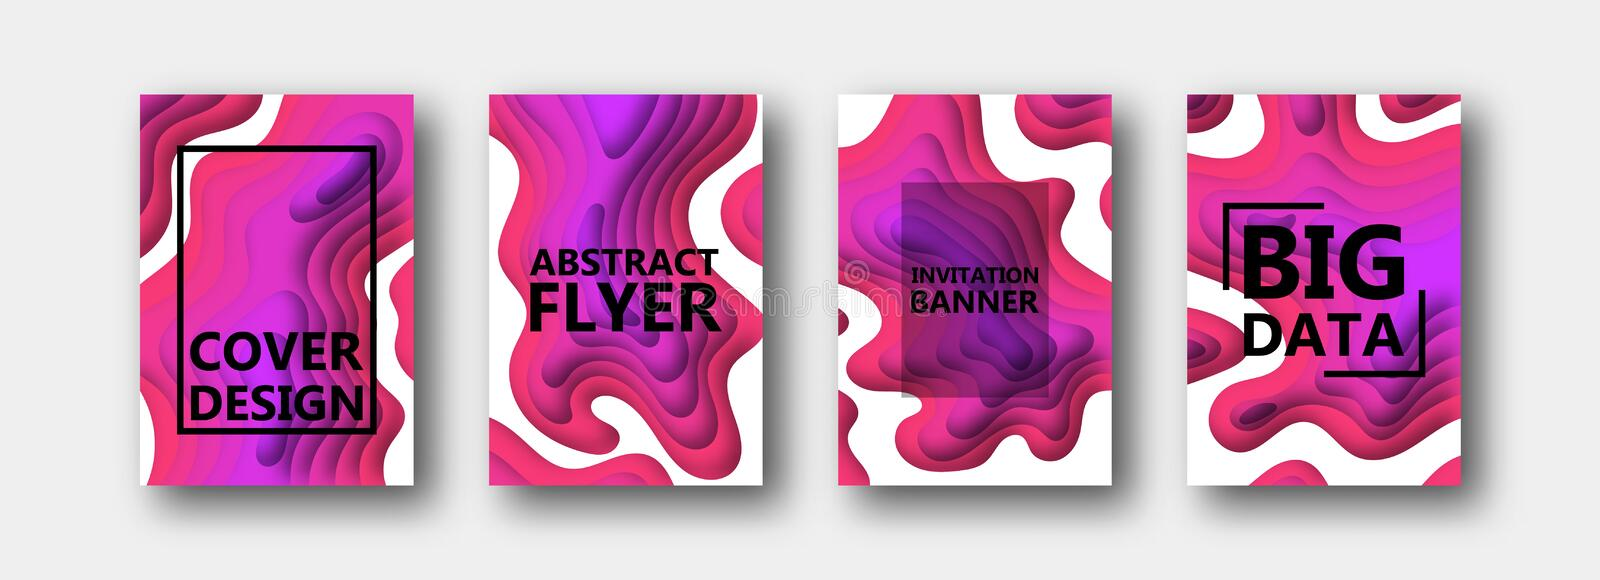 A set of four options for banners, flyers, brochures, cards, posters for your design, in red, purple, pink, lilac tones royalty free illustration